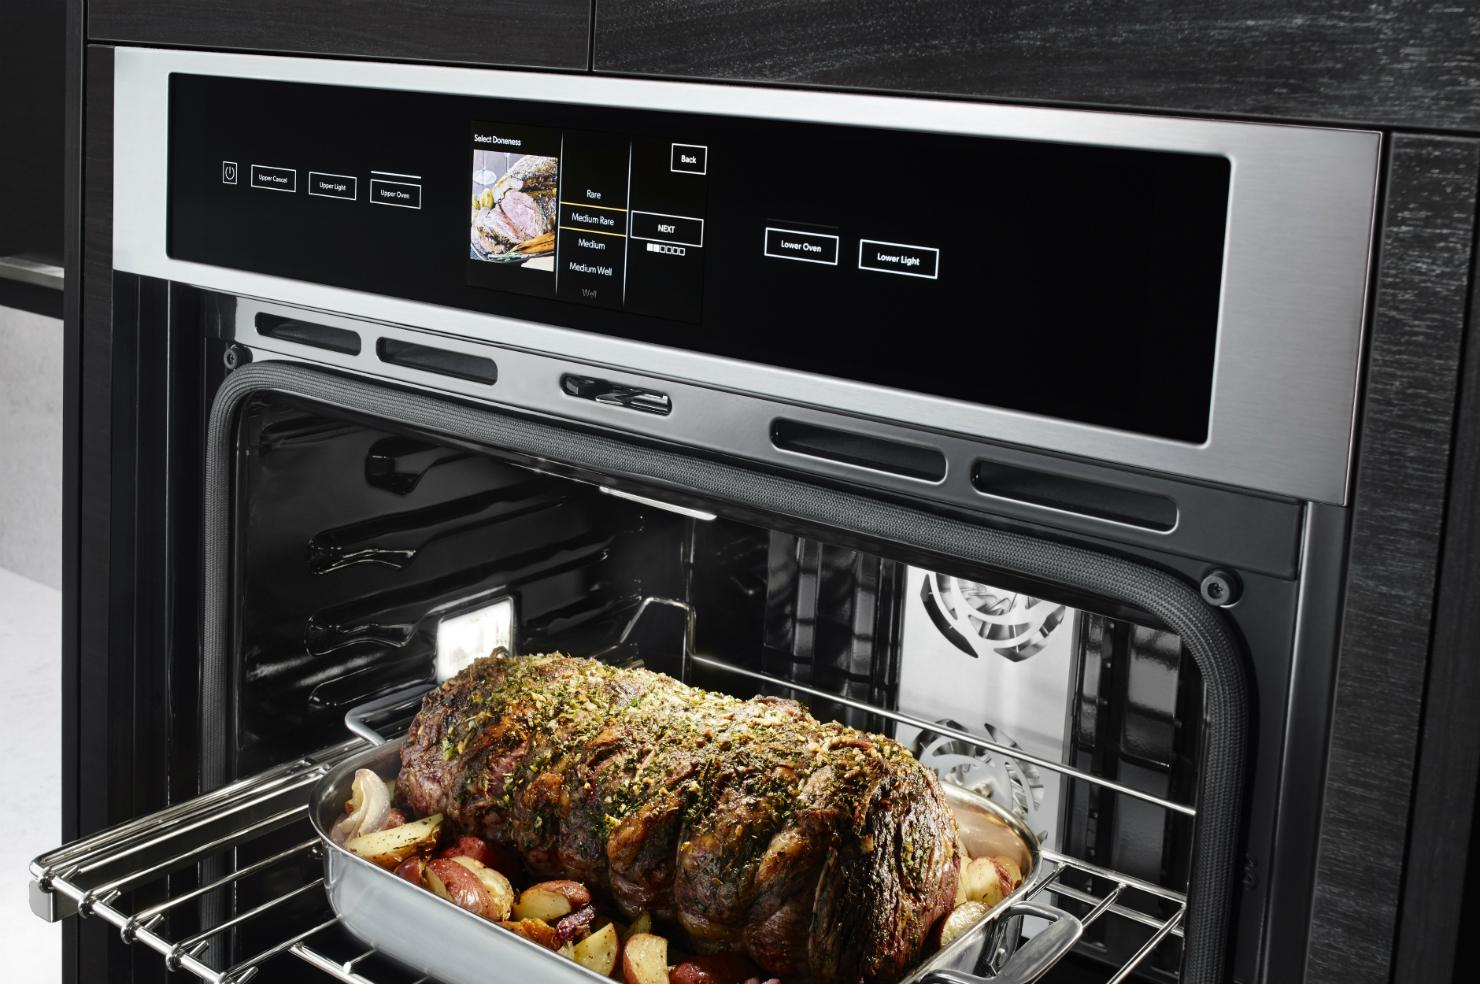 Jenn-Air-Wall-Oven-Open-with-Roast1.jpg